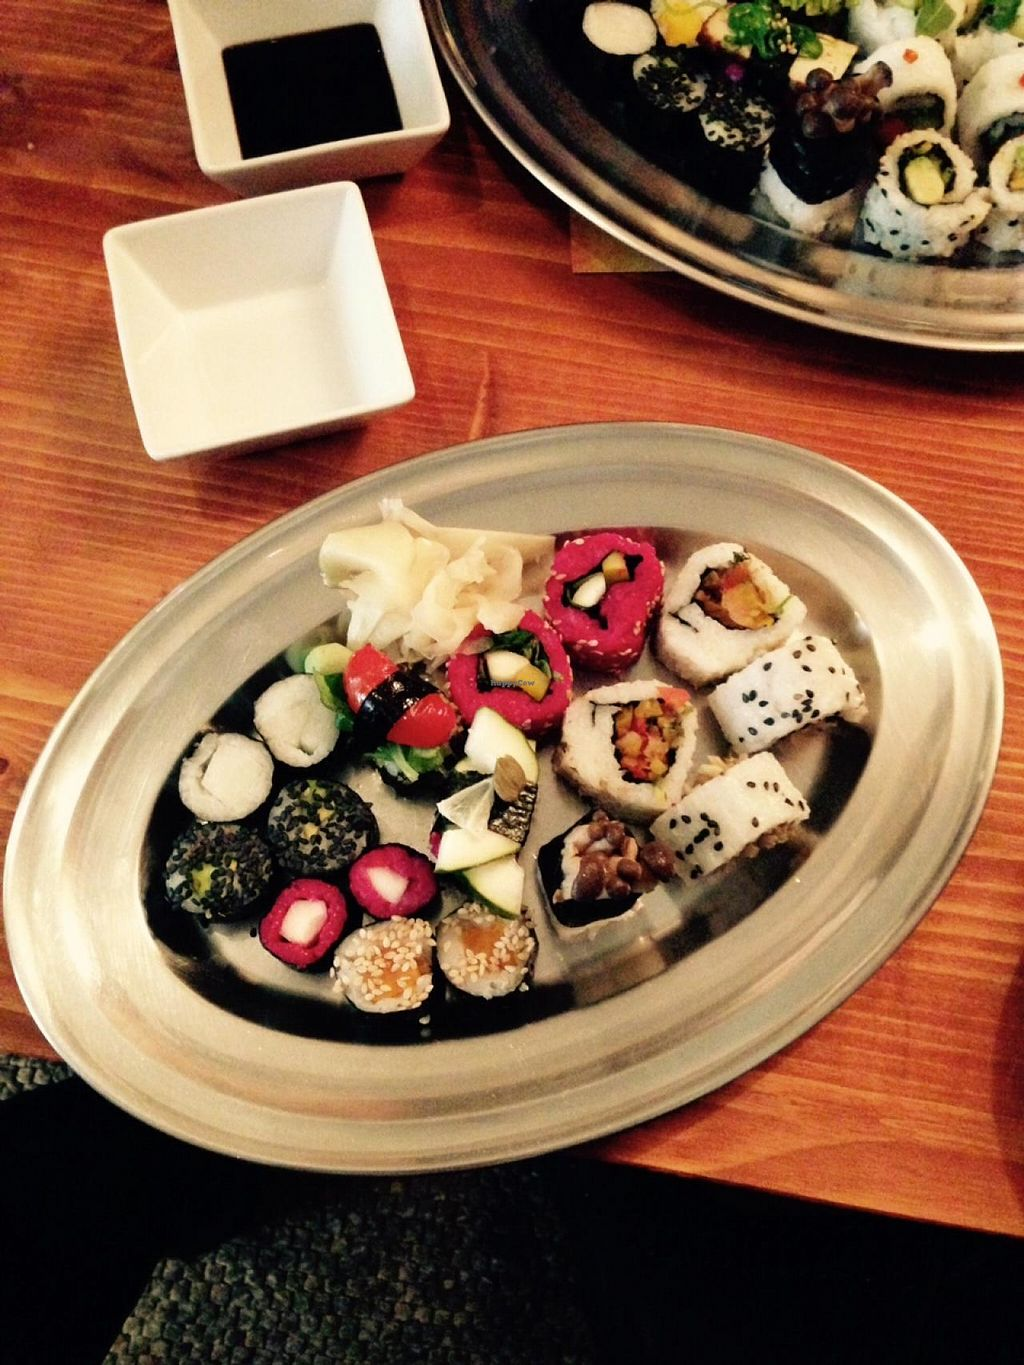 """Photo of CLOSED: Pirata  by <a href=""""/members/profile/Misanthropia"""">Misanthropia</a> <br/>Vegan sushi at pirata <br/> May 21, 2015  - <a href='/contact/abuse/image/55257/102967'>Report</a>"""